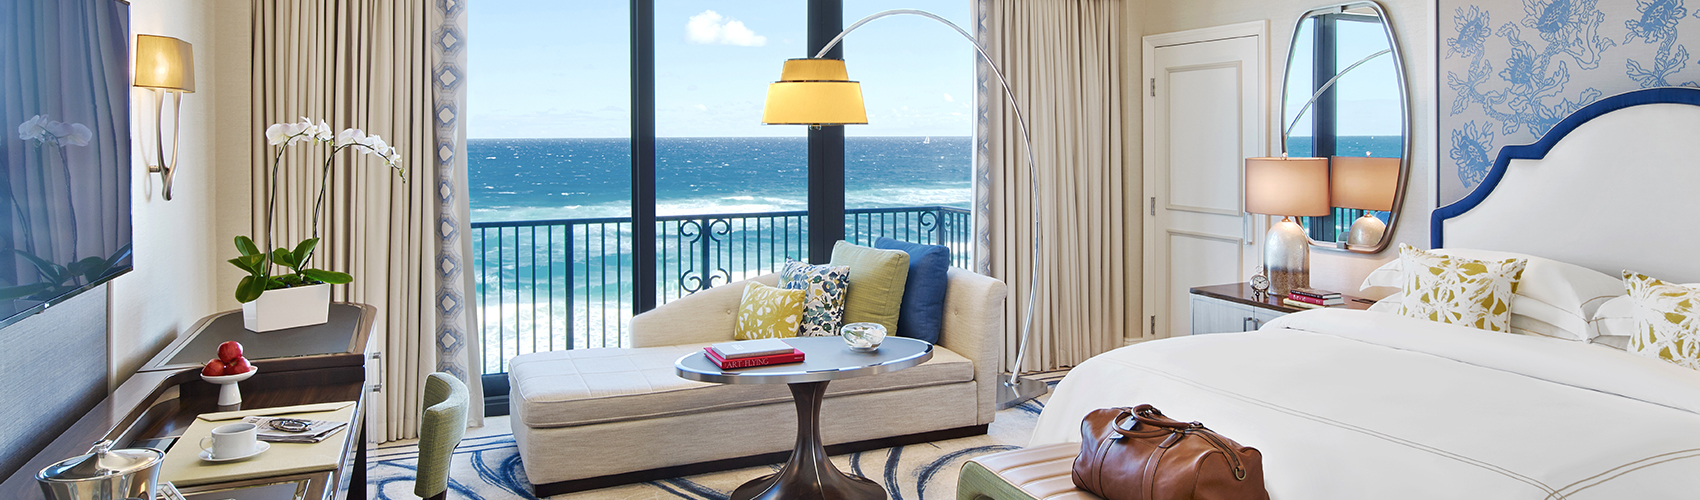 Oceanfront guest room at The Breakers Palm Beach